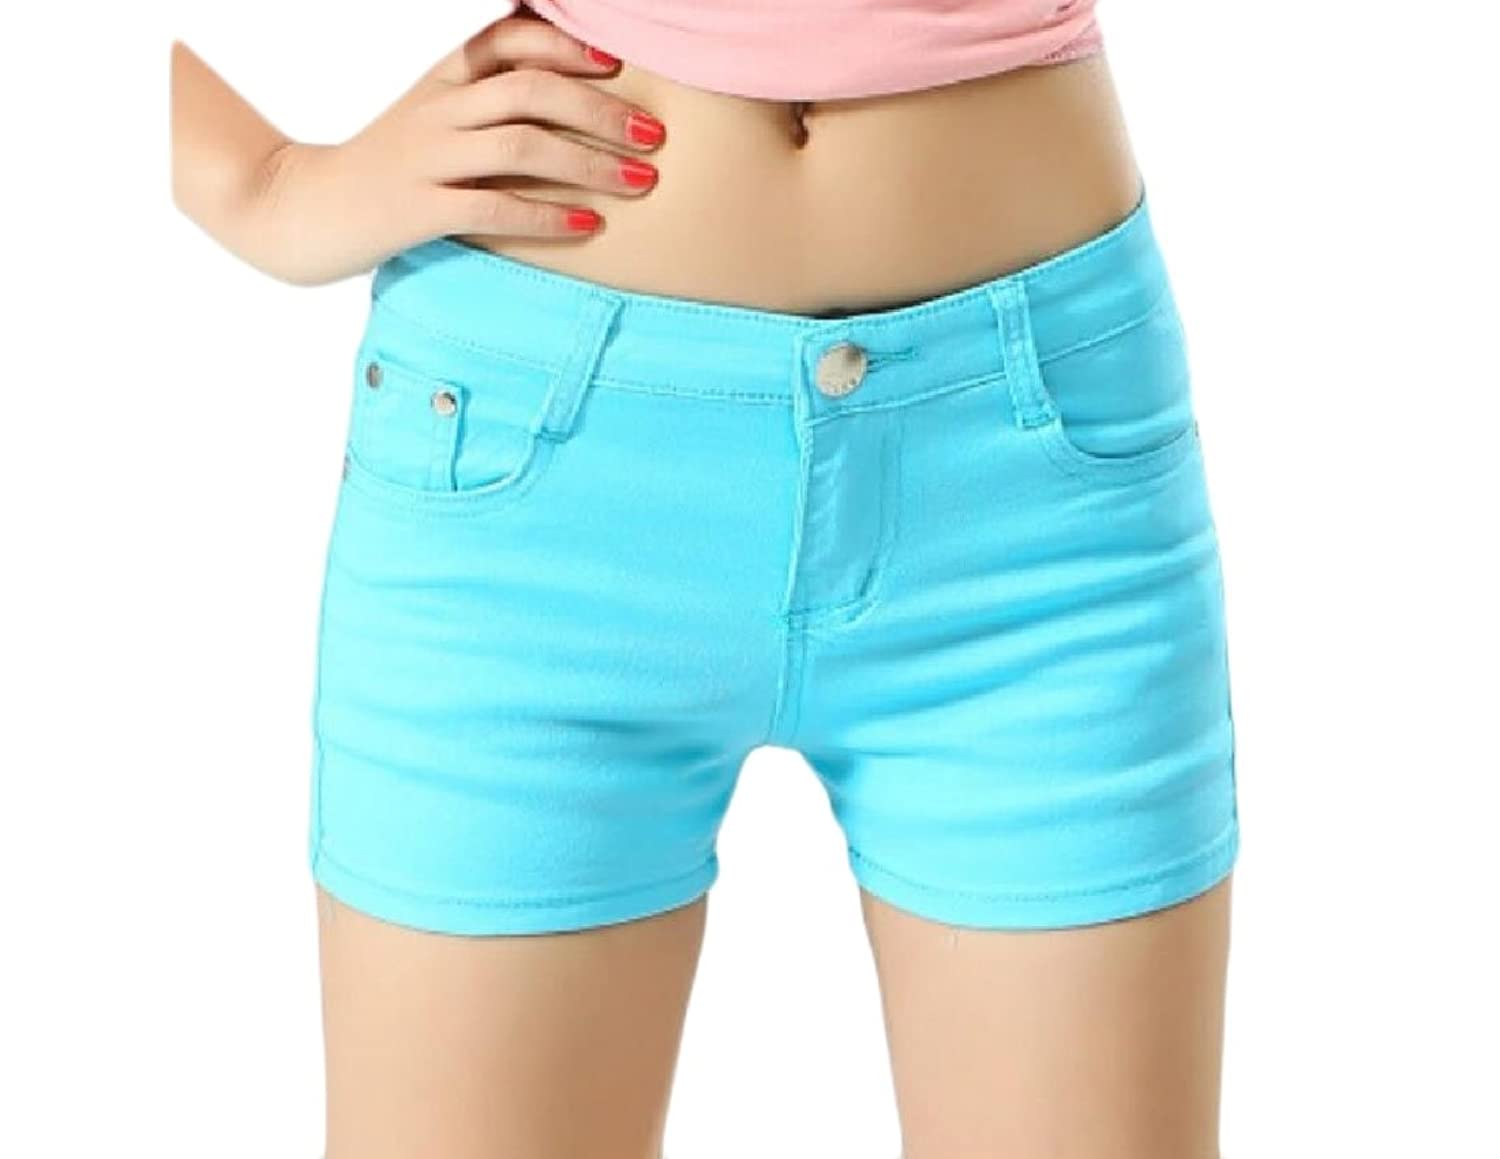 Abetteric Women Short Summer Shorts Skinny Summer Leisure Mulit Color Shorts Jeans Light Blue XXS